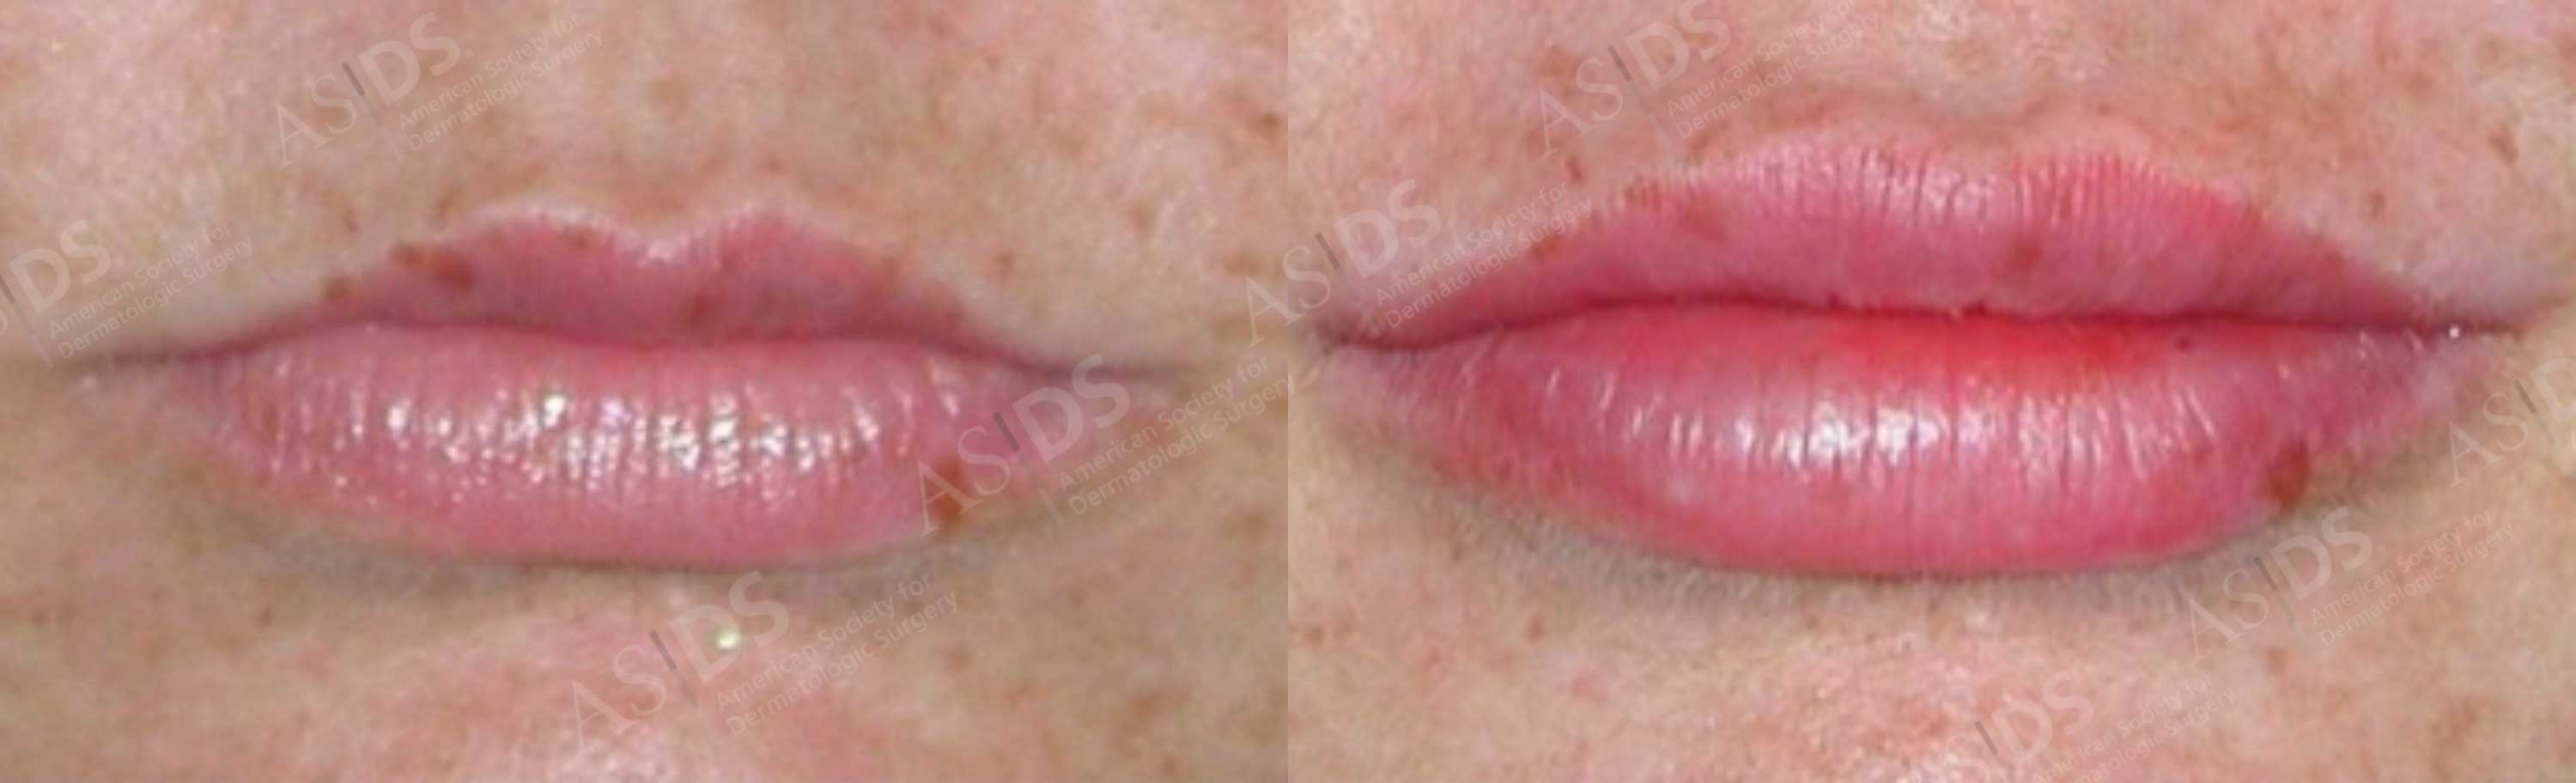 Before and after endovenous laser ablation